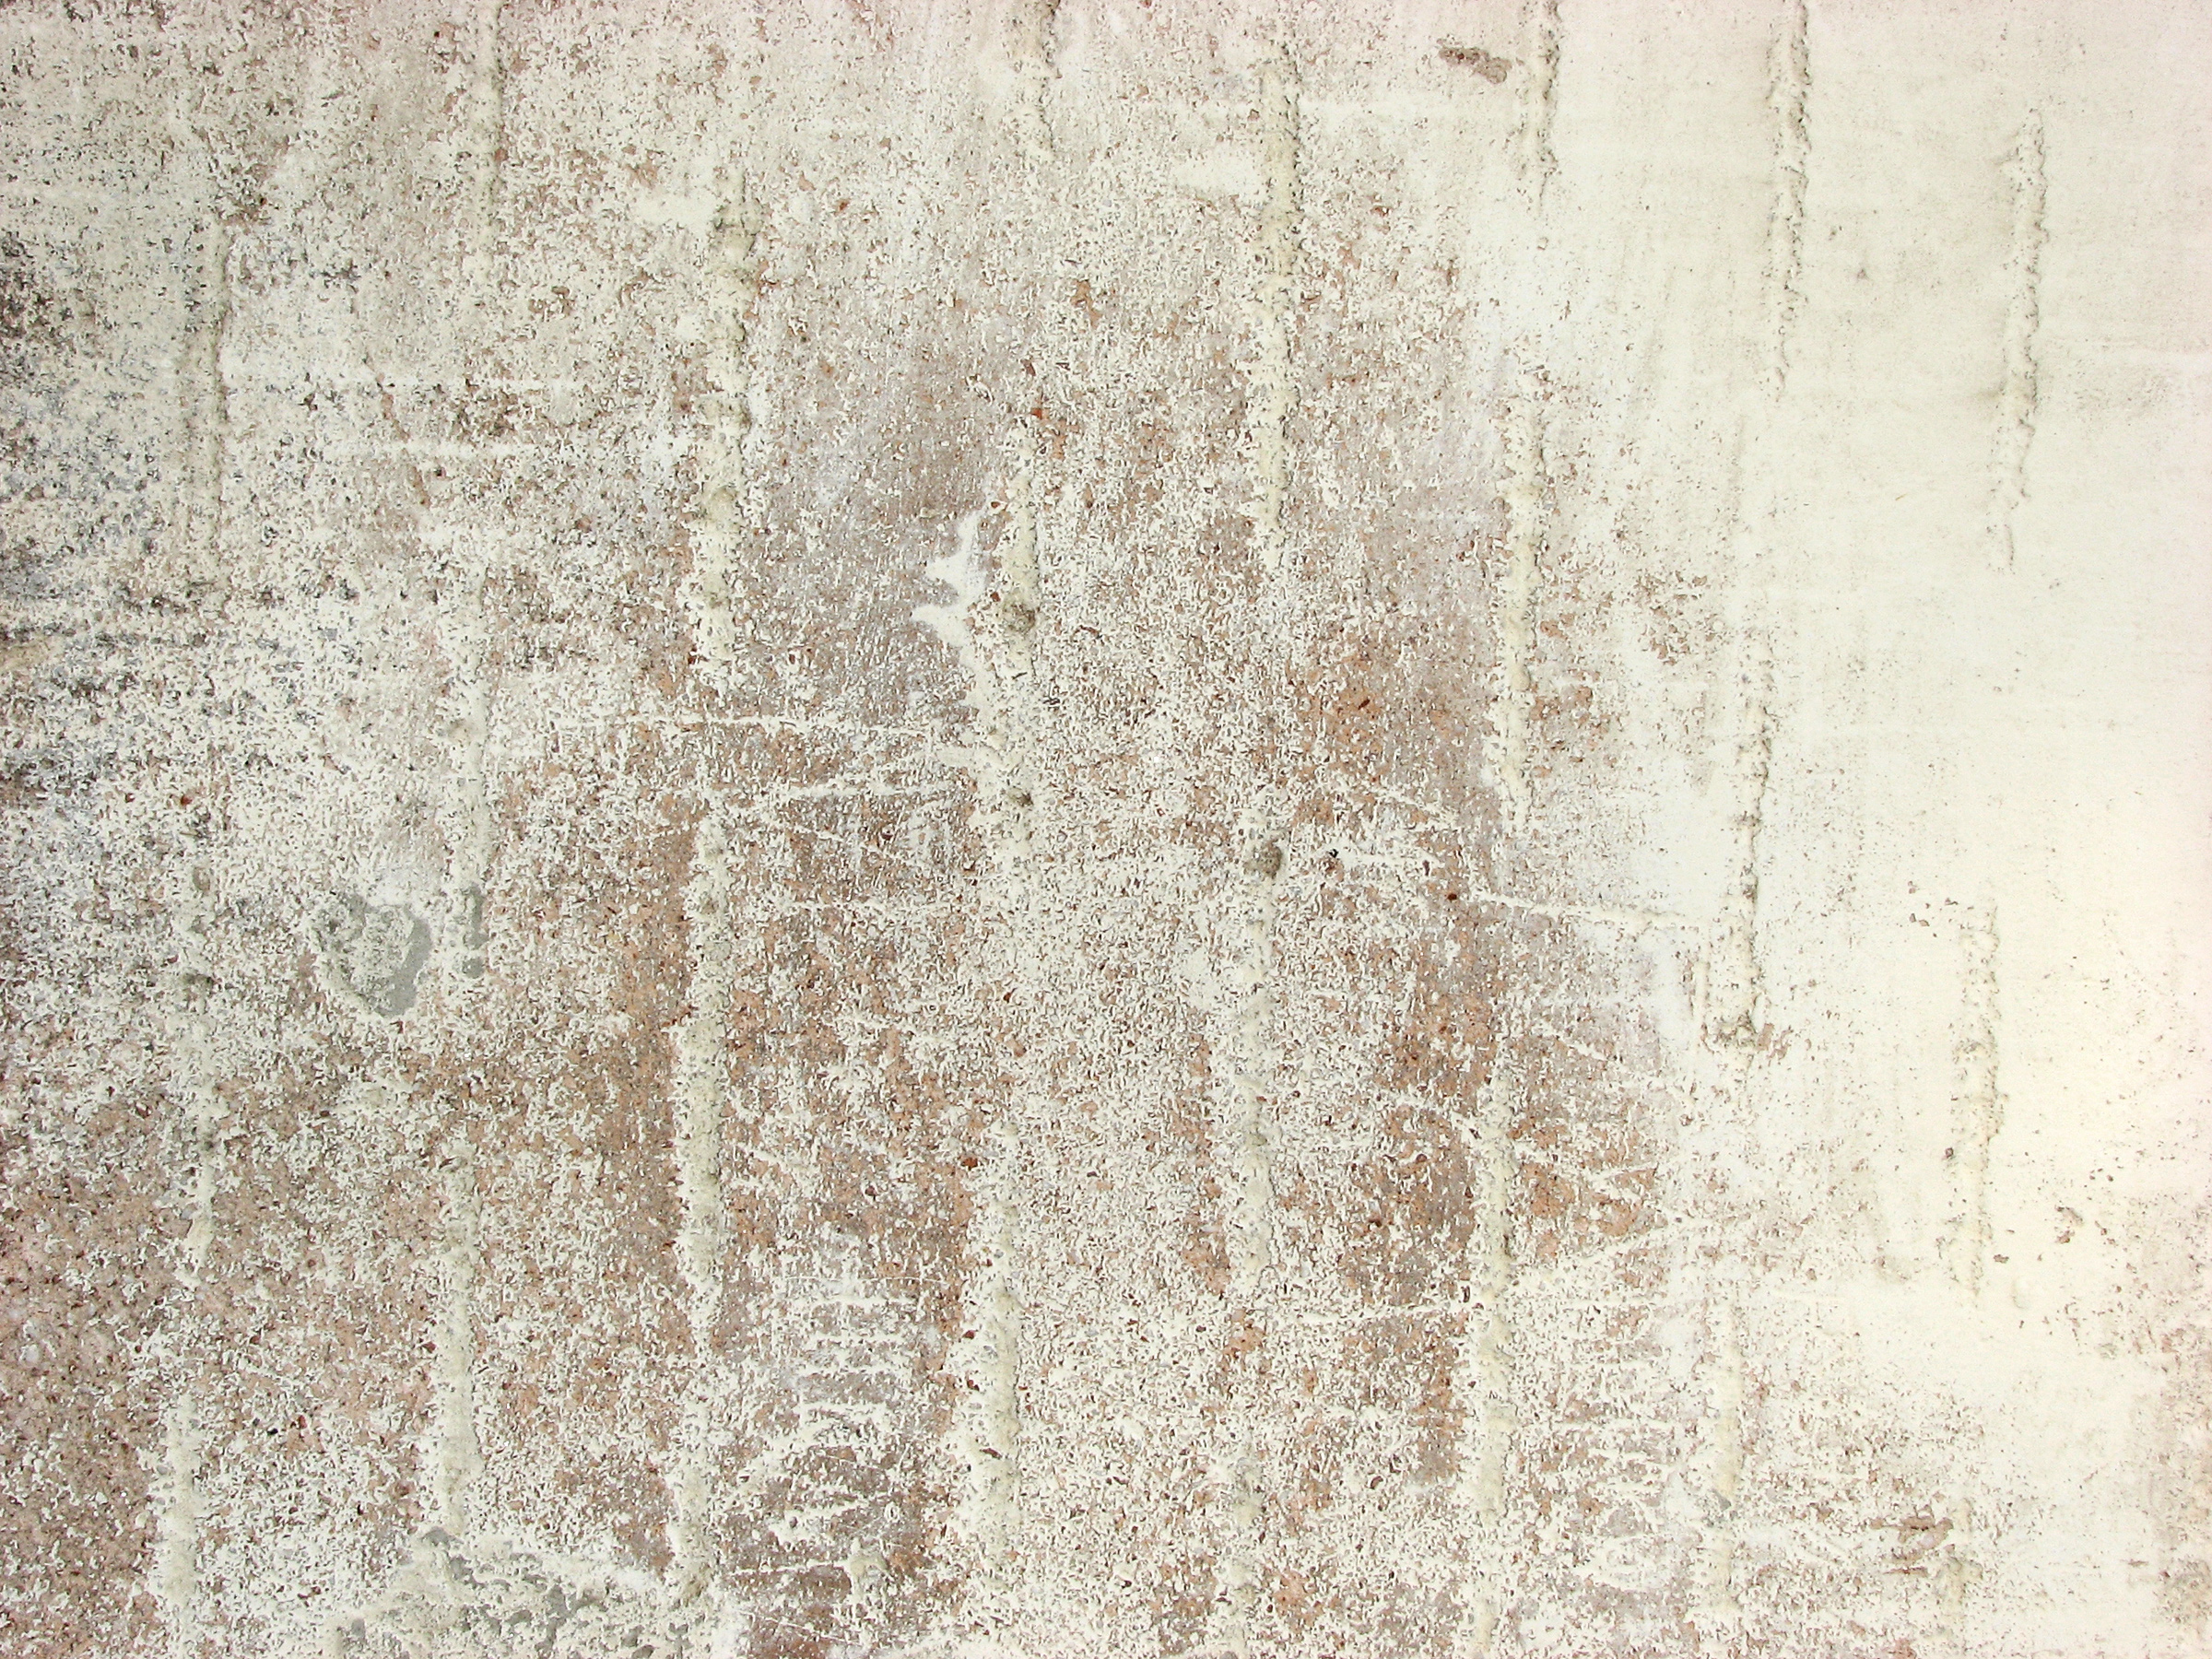 texture Wall 07 by stockmacedonia on DeviantArt